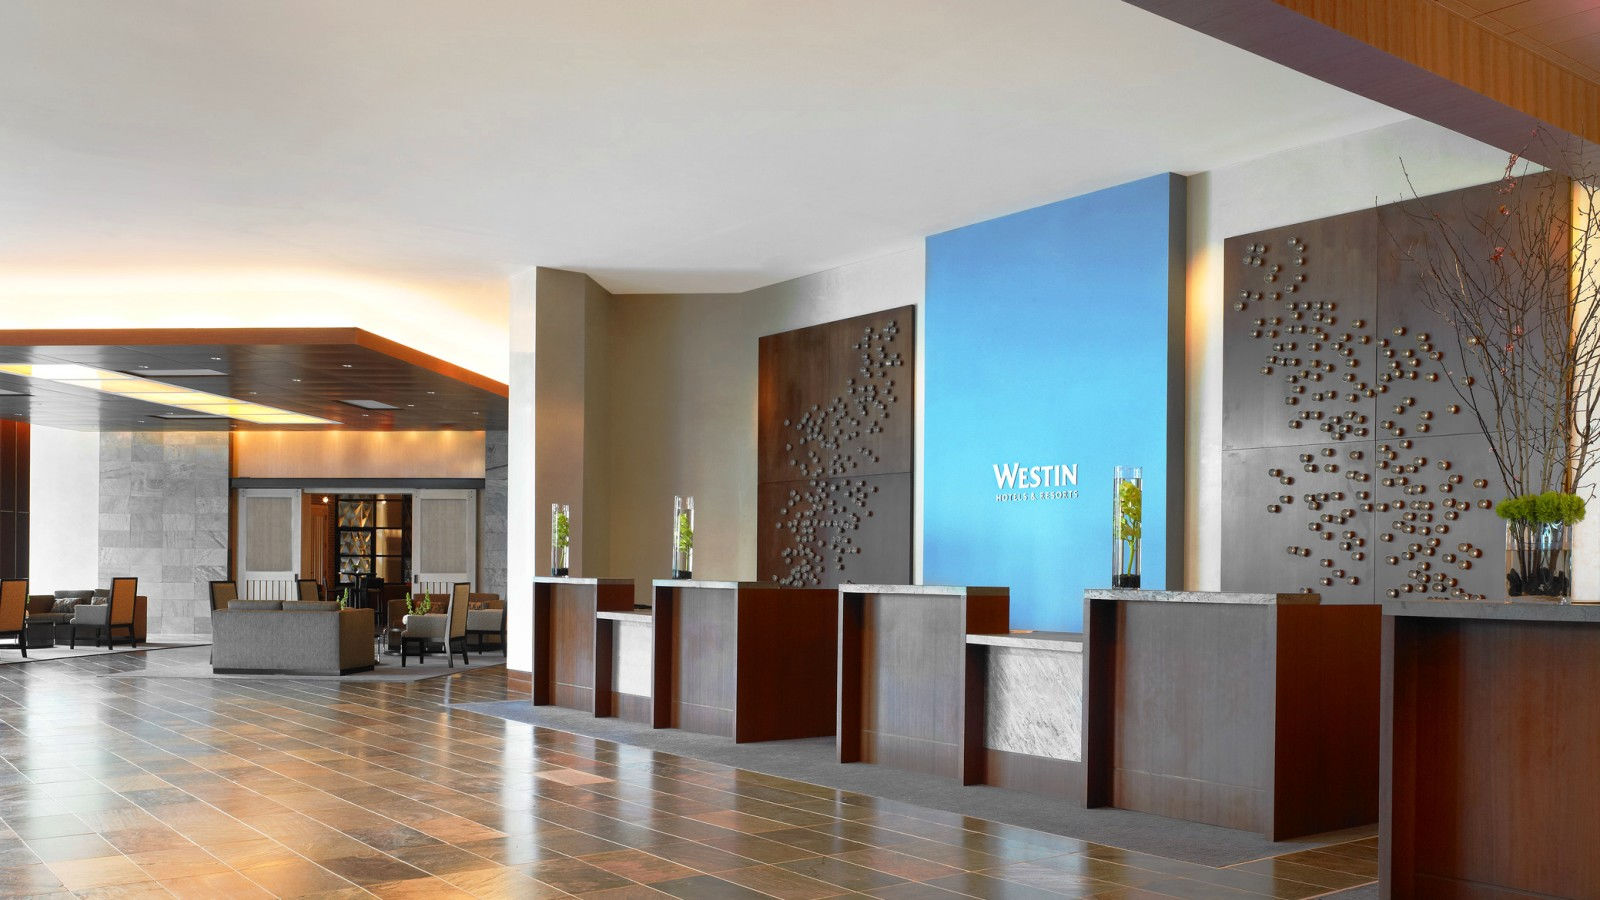 The Westin Houston, Memorial City Lobby - conveniently located near our parking facilities.